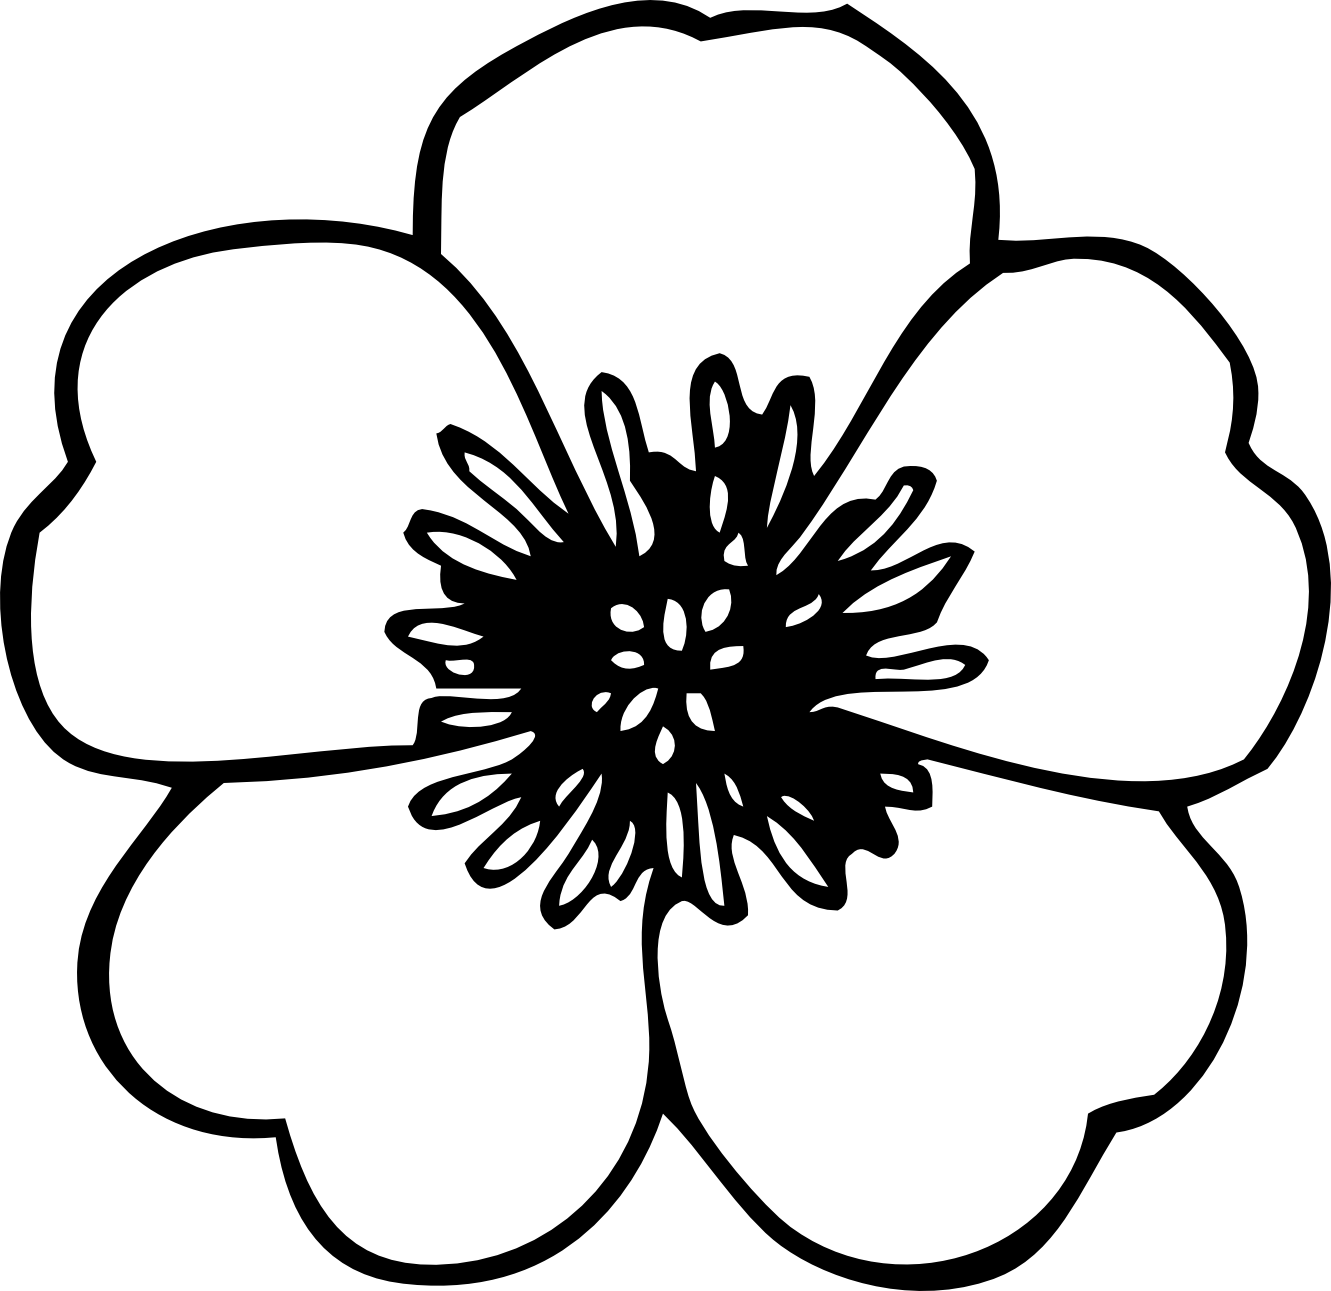 Camera clip art flower. Daisy black and white